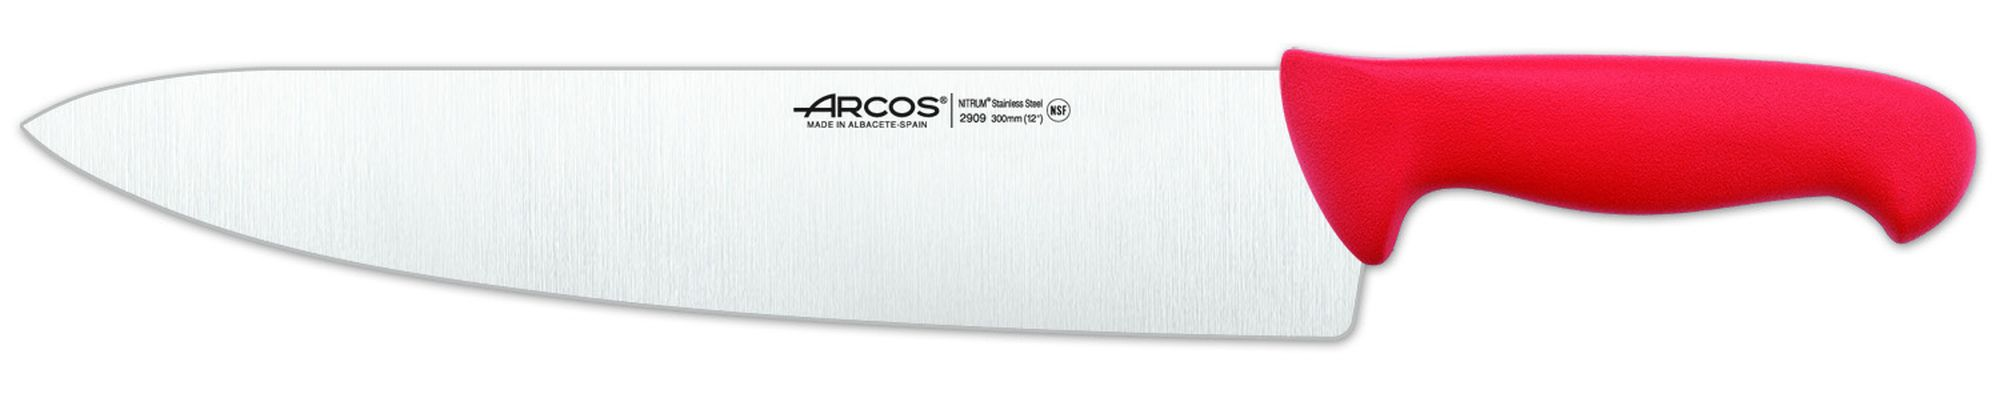 Chef's Knife Arcos ref.: 290922